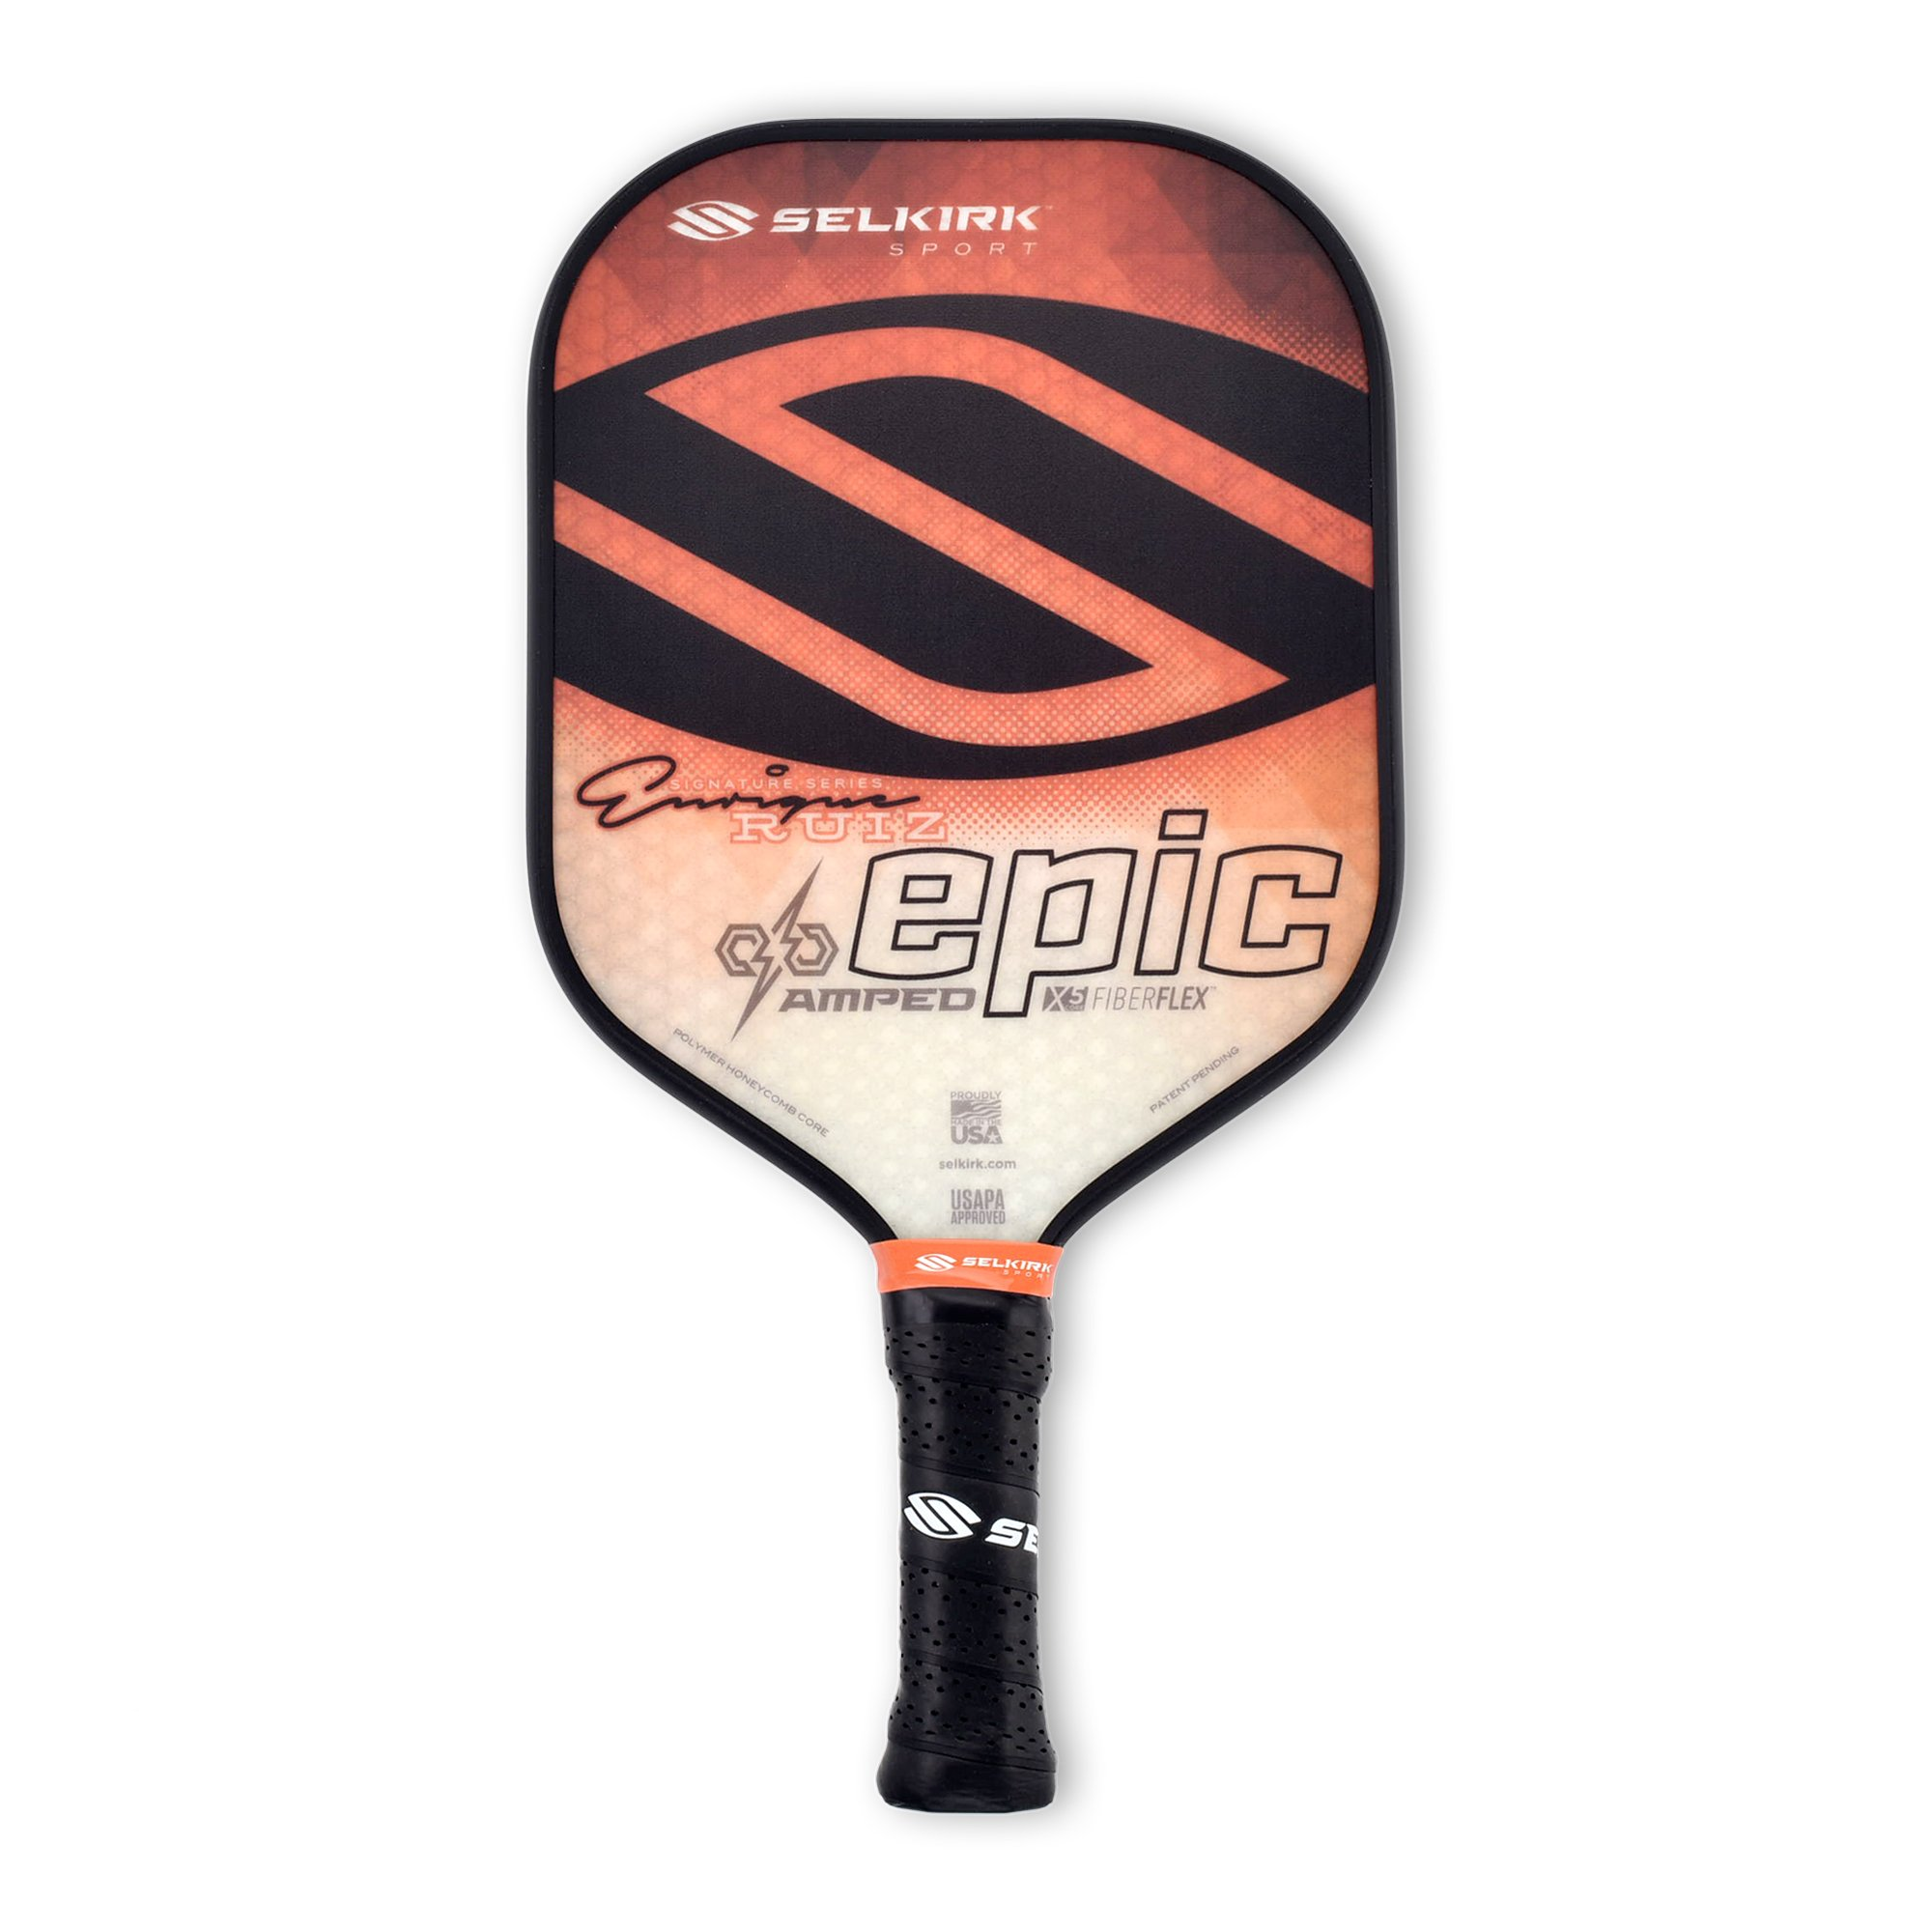 Selkirk Amped Pickleball Paddle - USAPA Approved - X5 Polypropylene Core - FiberFlex Fiberglass Face - 5 Sizes: Epic, S2, Omni, Maxima, and INVIKTA (Epic Midweight - Enrique Sig. Orange)